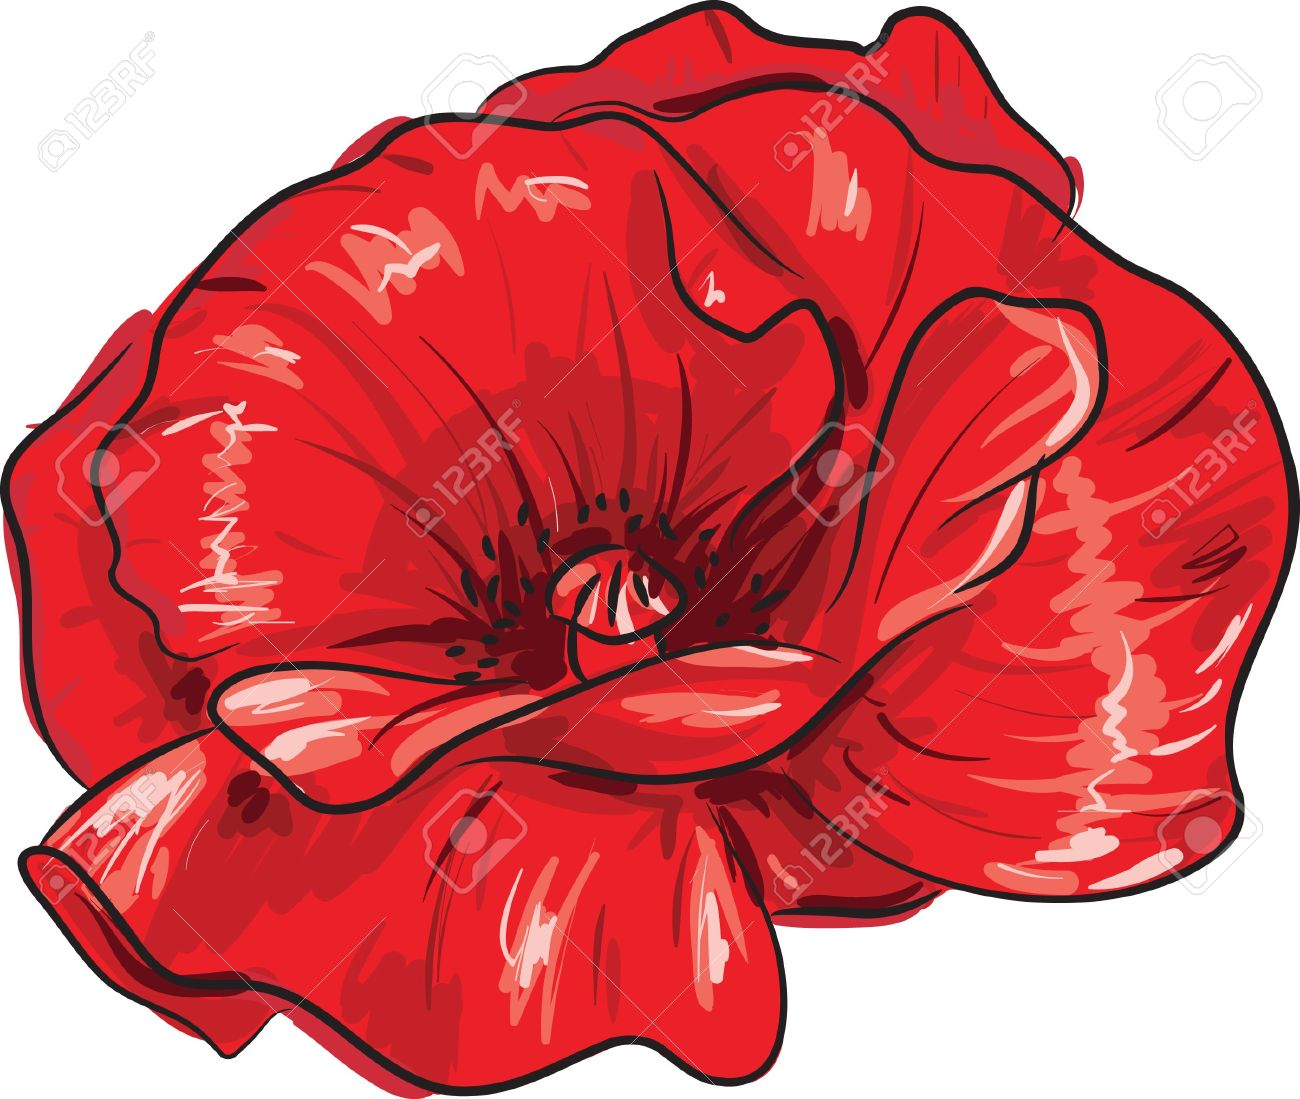 Poppy flower drawing at getdrawings free for personal use 1300x1099 red poppy flower mightylinksfo Image collections